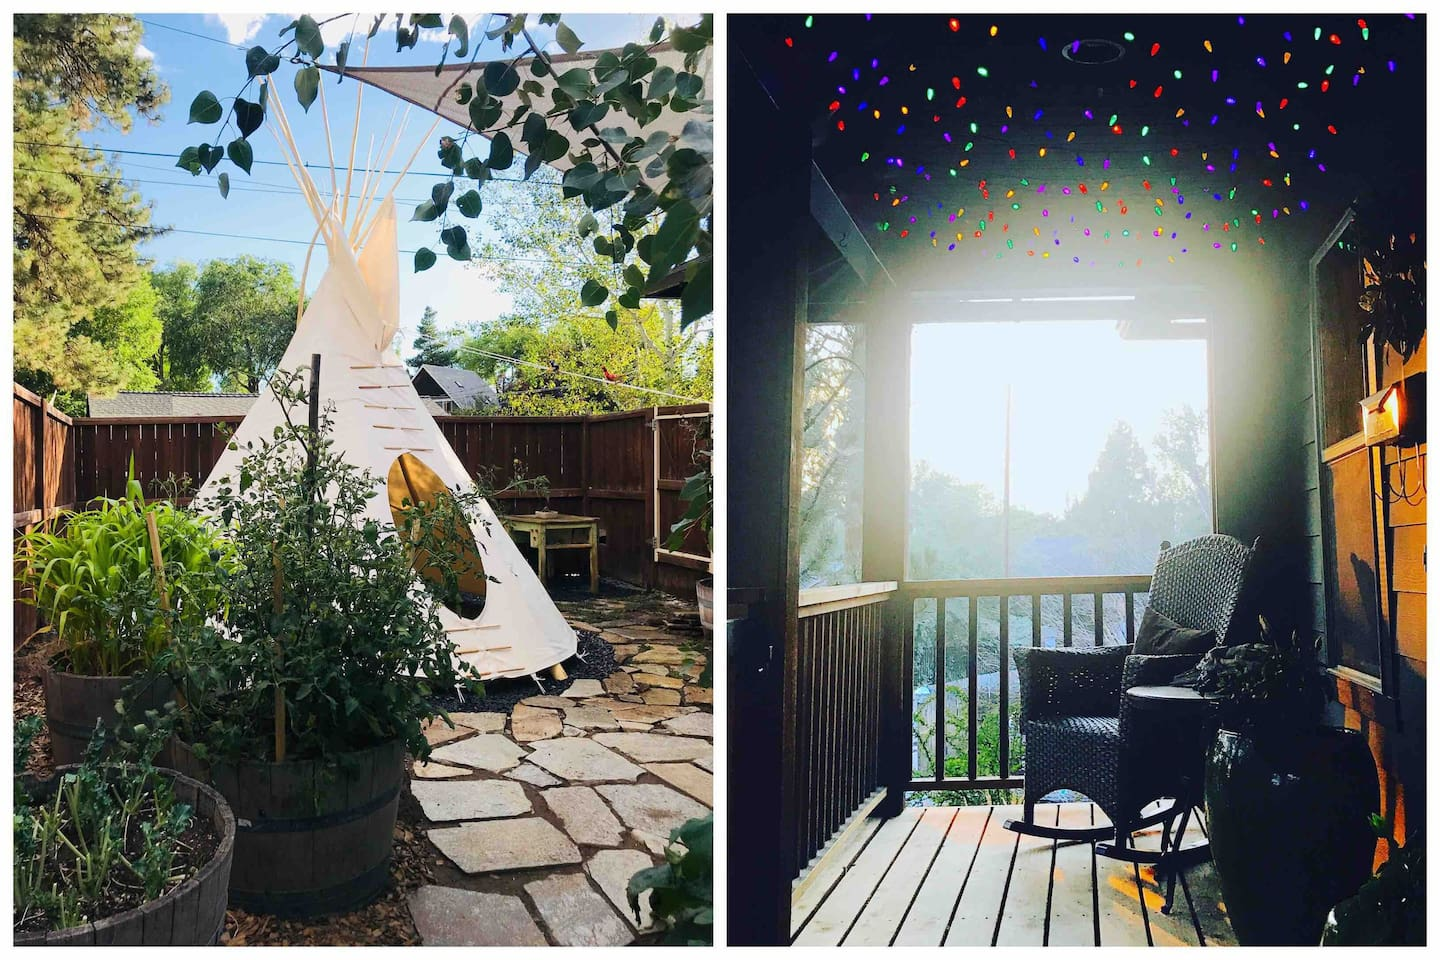 Our urban tipi is 12' in diameter and sleeps 2. We'll provide the fire log (Java Logs) and marshmallow skewers. The house is South facing and sits up high on the foundation above the street. We get a great sunset view from the porch.